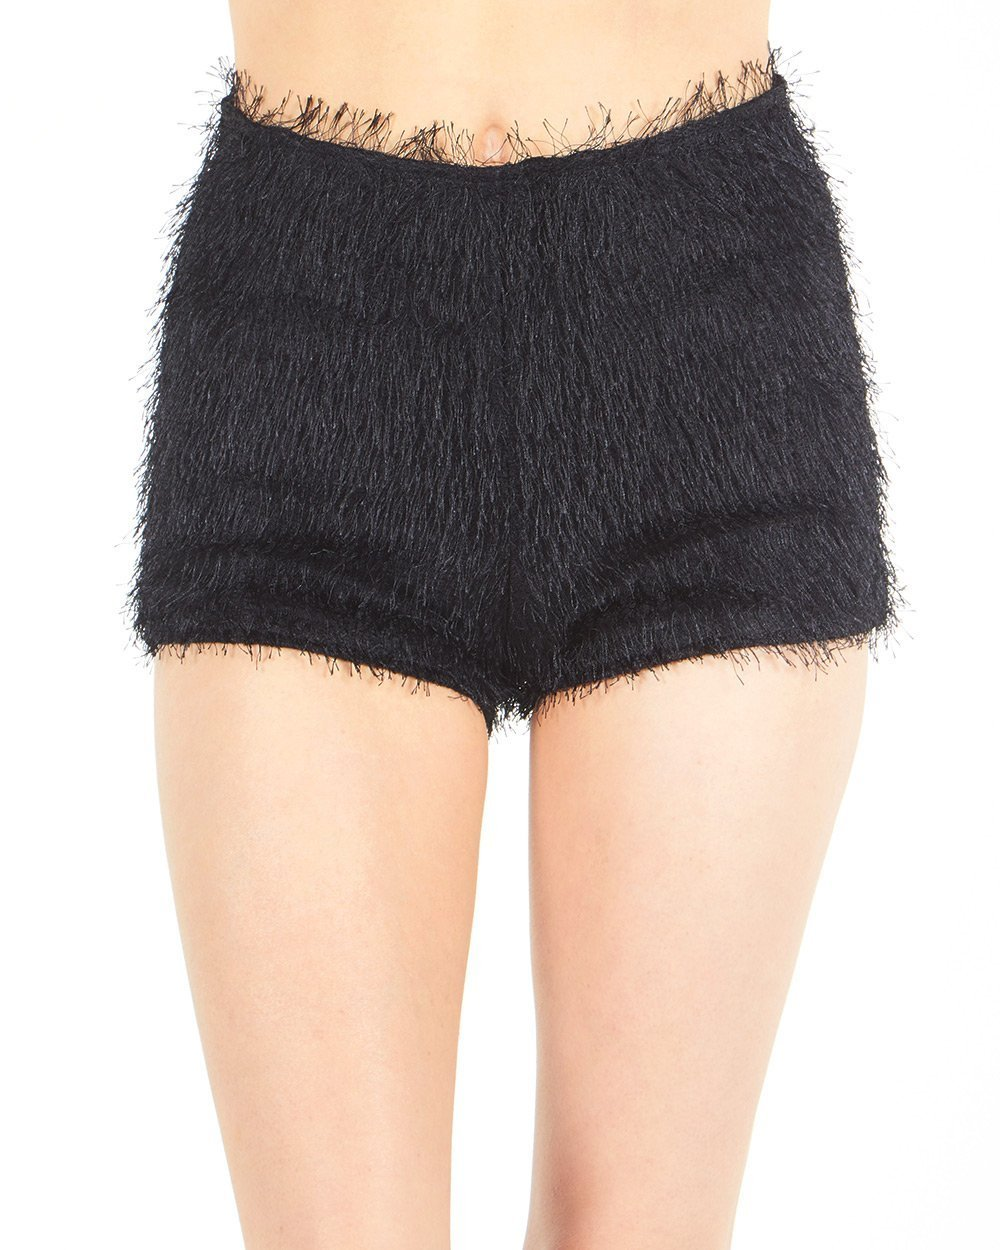 iHeartRaves Women's High Waisted Booty Shorts Bottoms